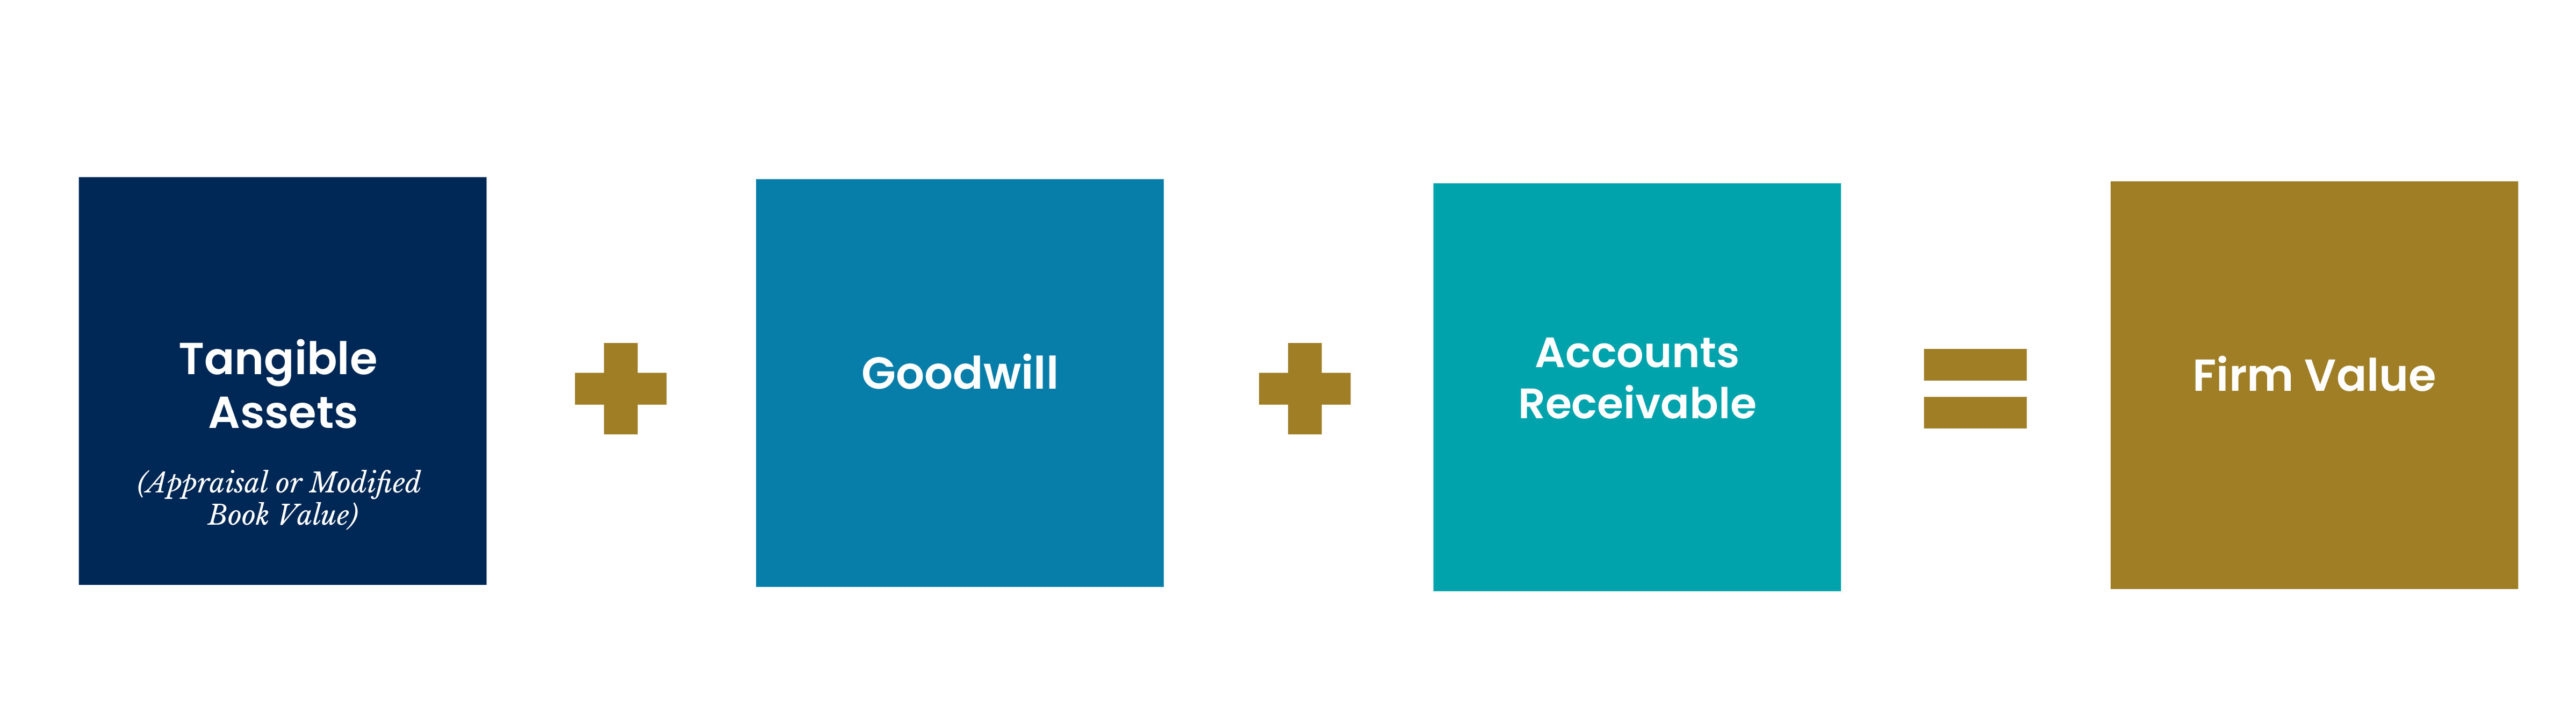 Tangible Value (Appraisal or Modified Book Value) + Goodwill+ Accounts Receivable = Firm Value